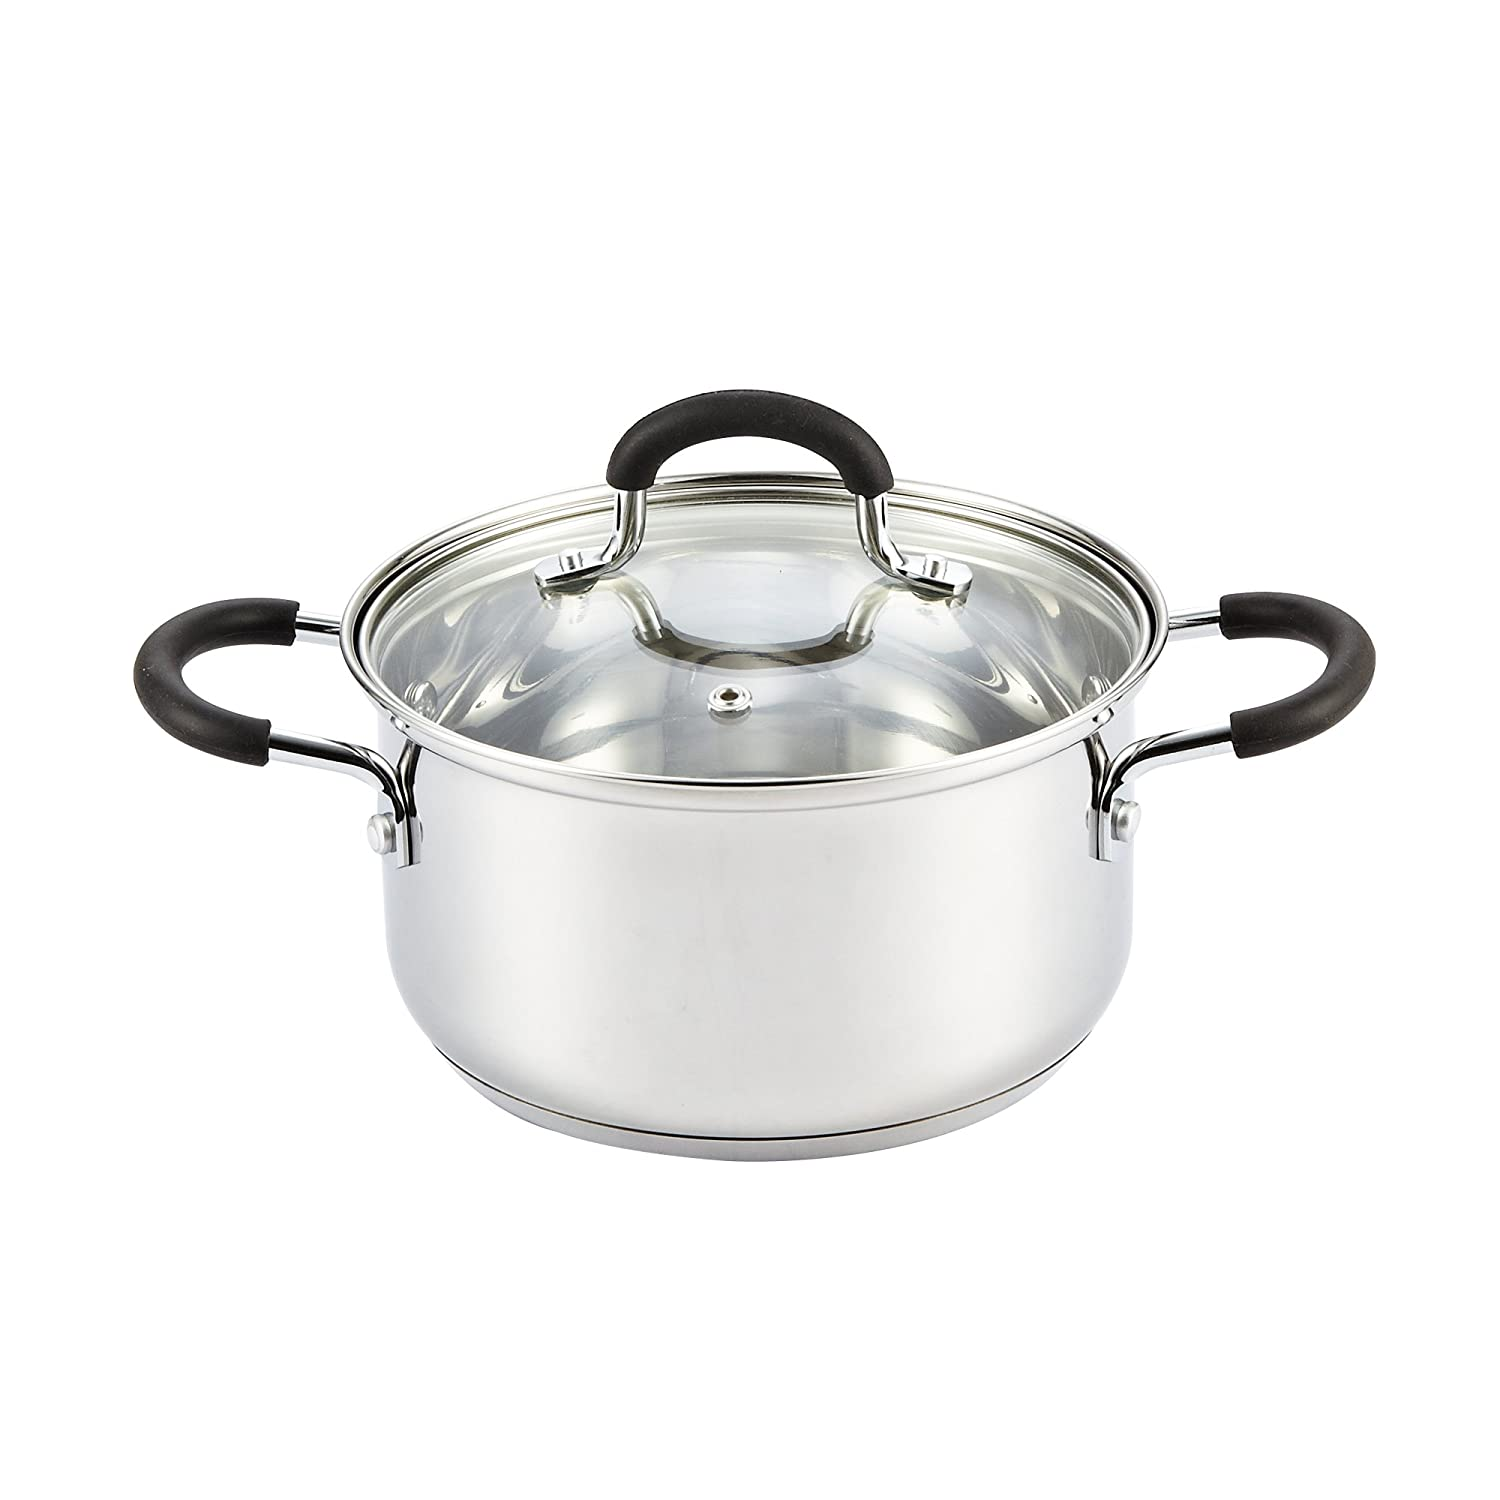 Cook N Home 02417 3 Quart Sauce Pot Casserole Pan